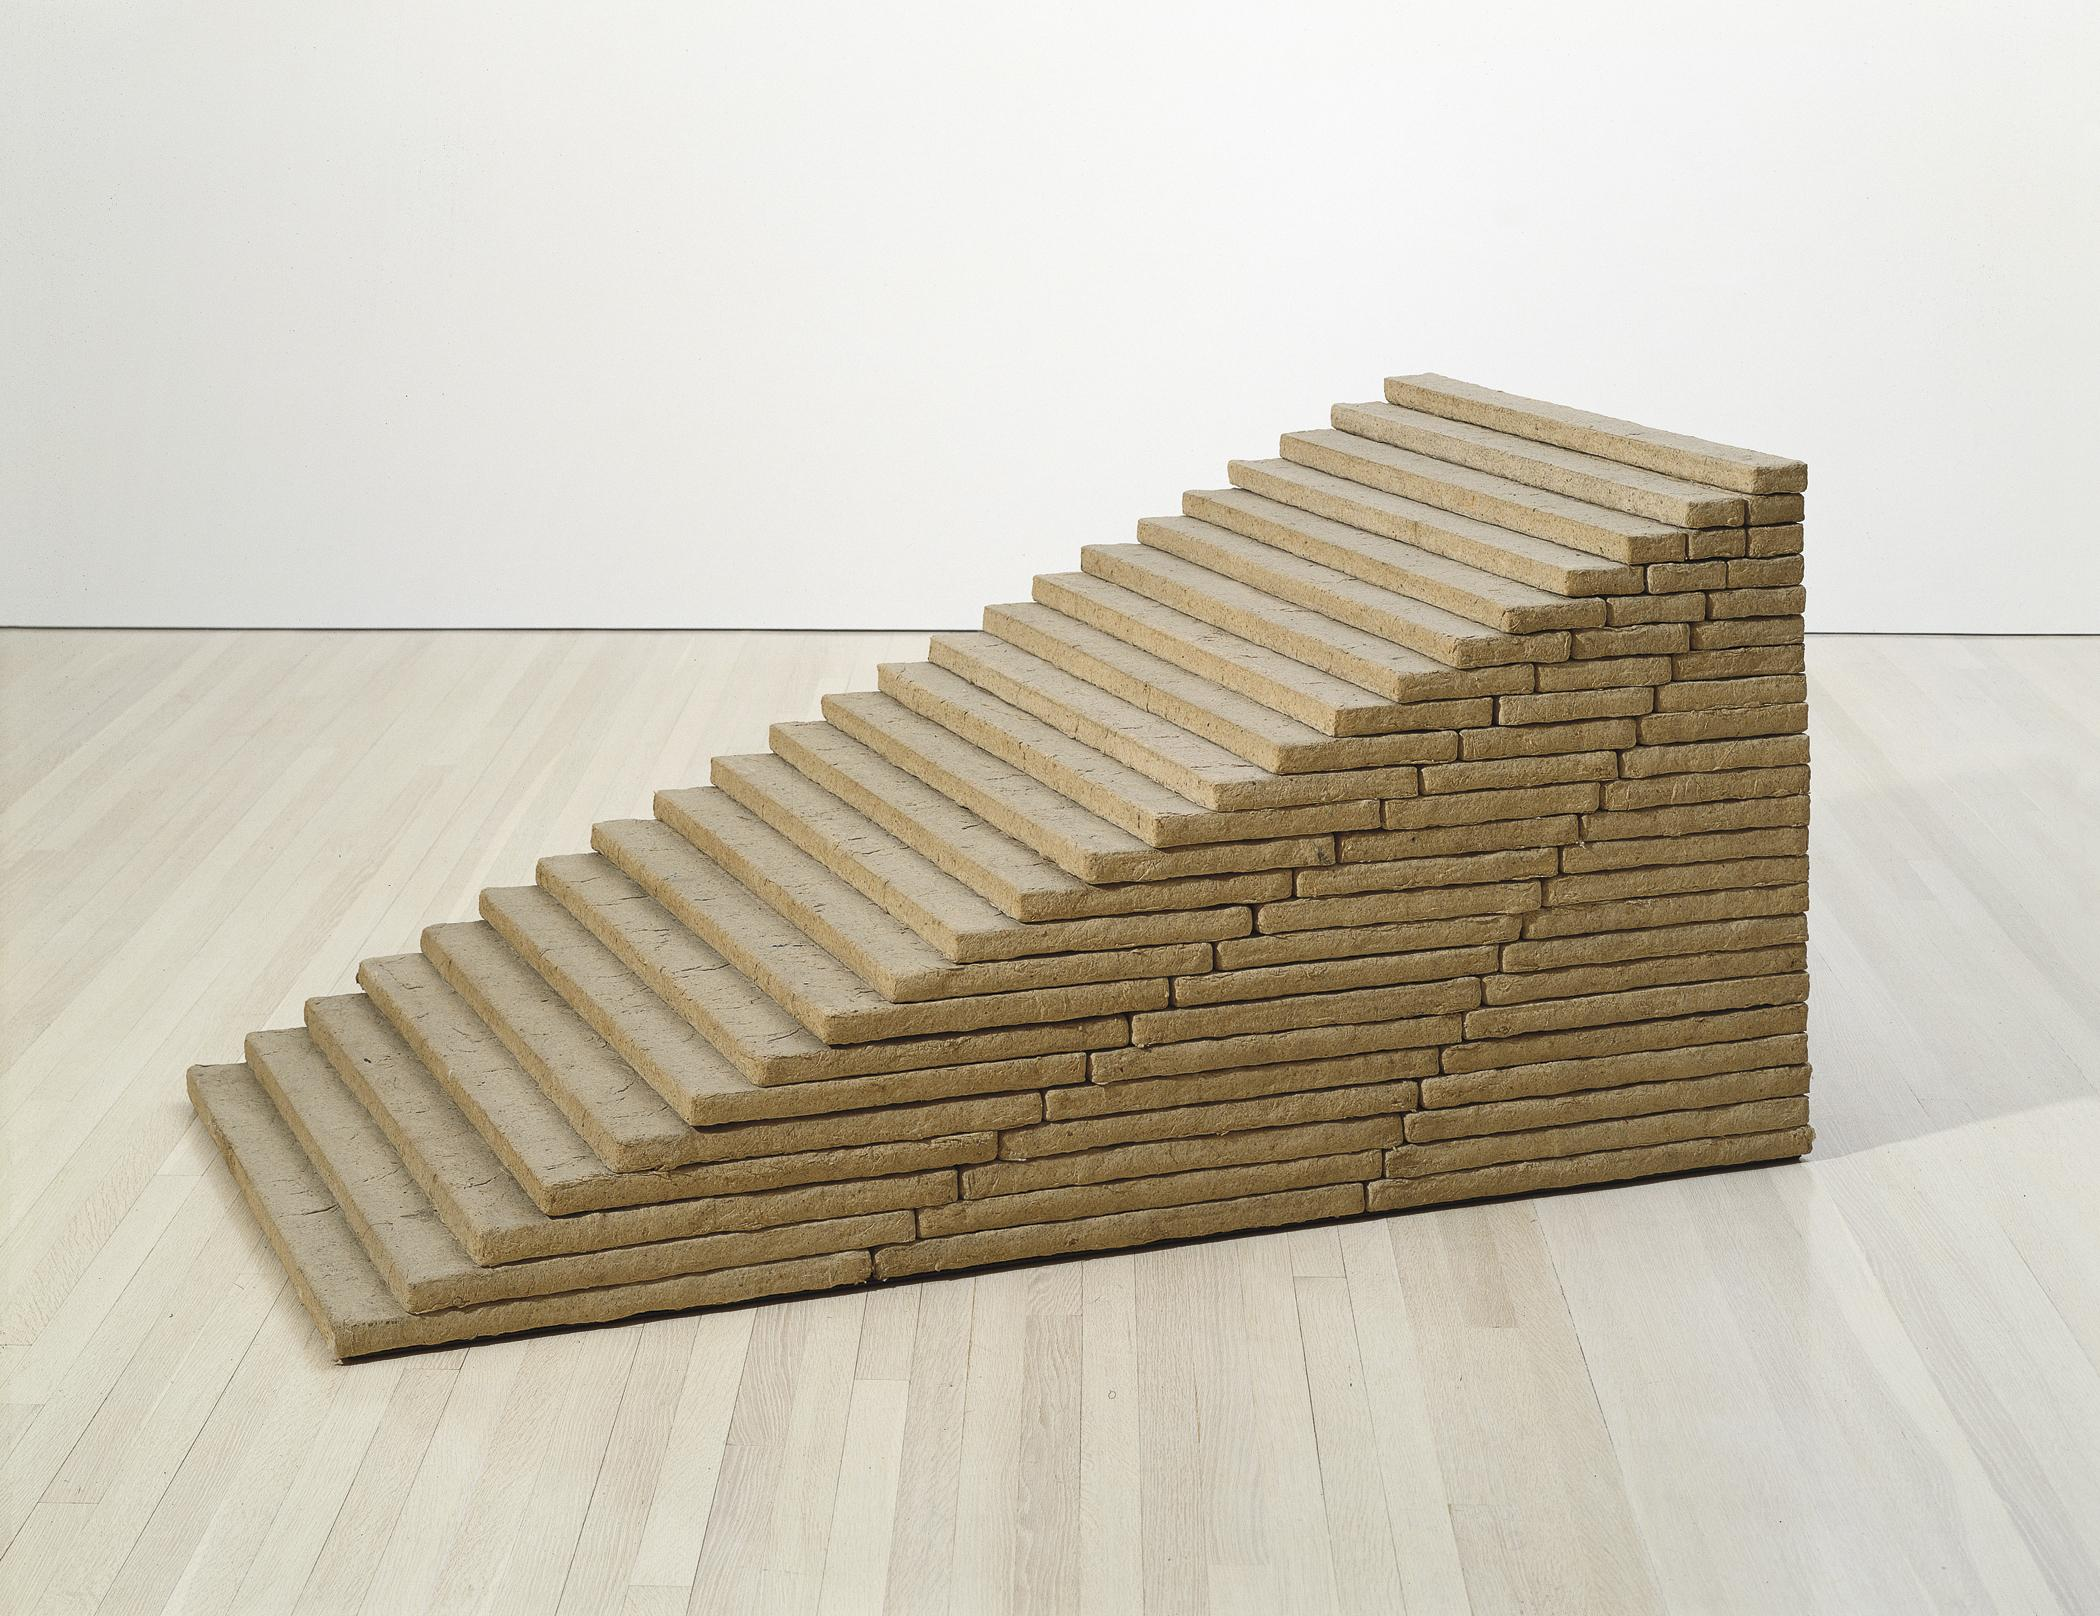 A short brown sculpture made of thin rectangular slabs stacked atop one another forming a twenty-three-step-high stairway sits on a hardwood floor in a gallery space.